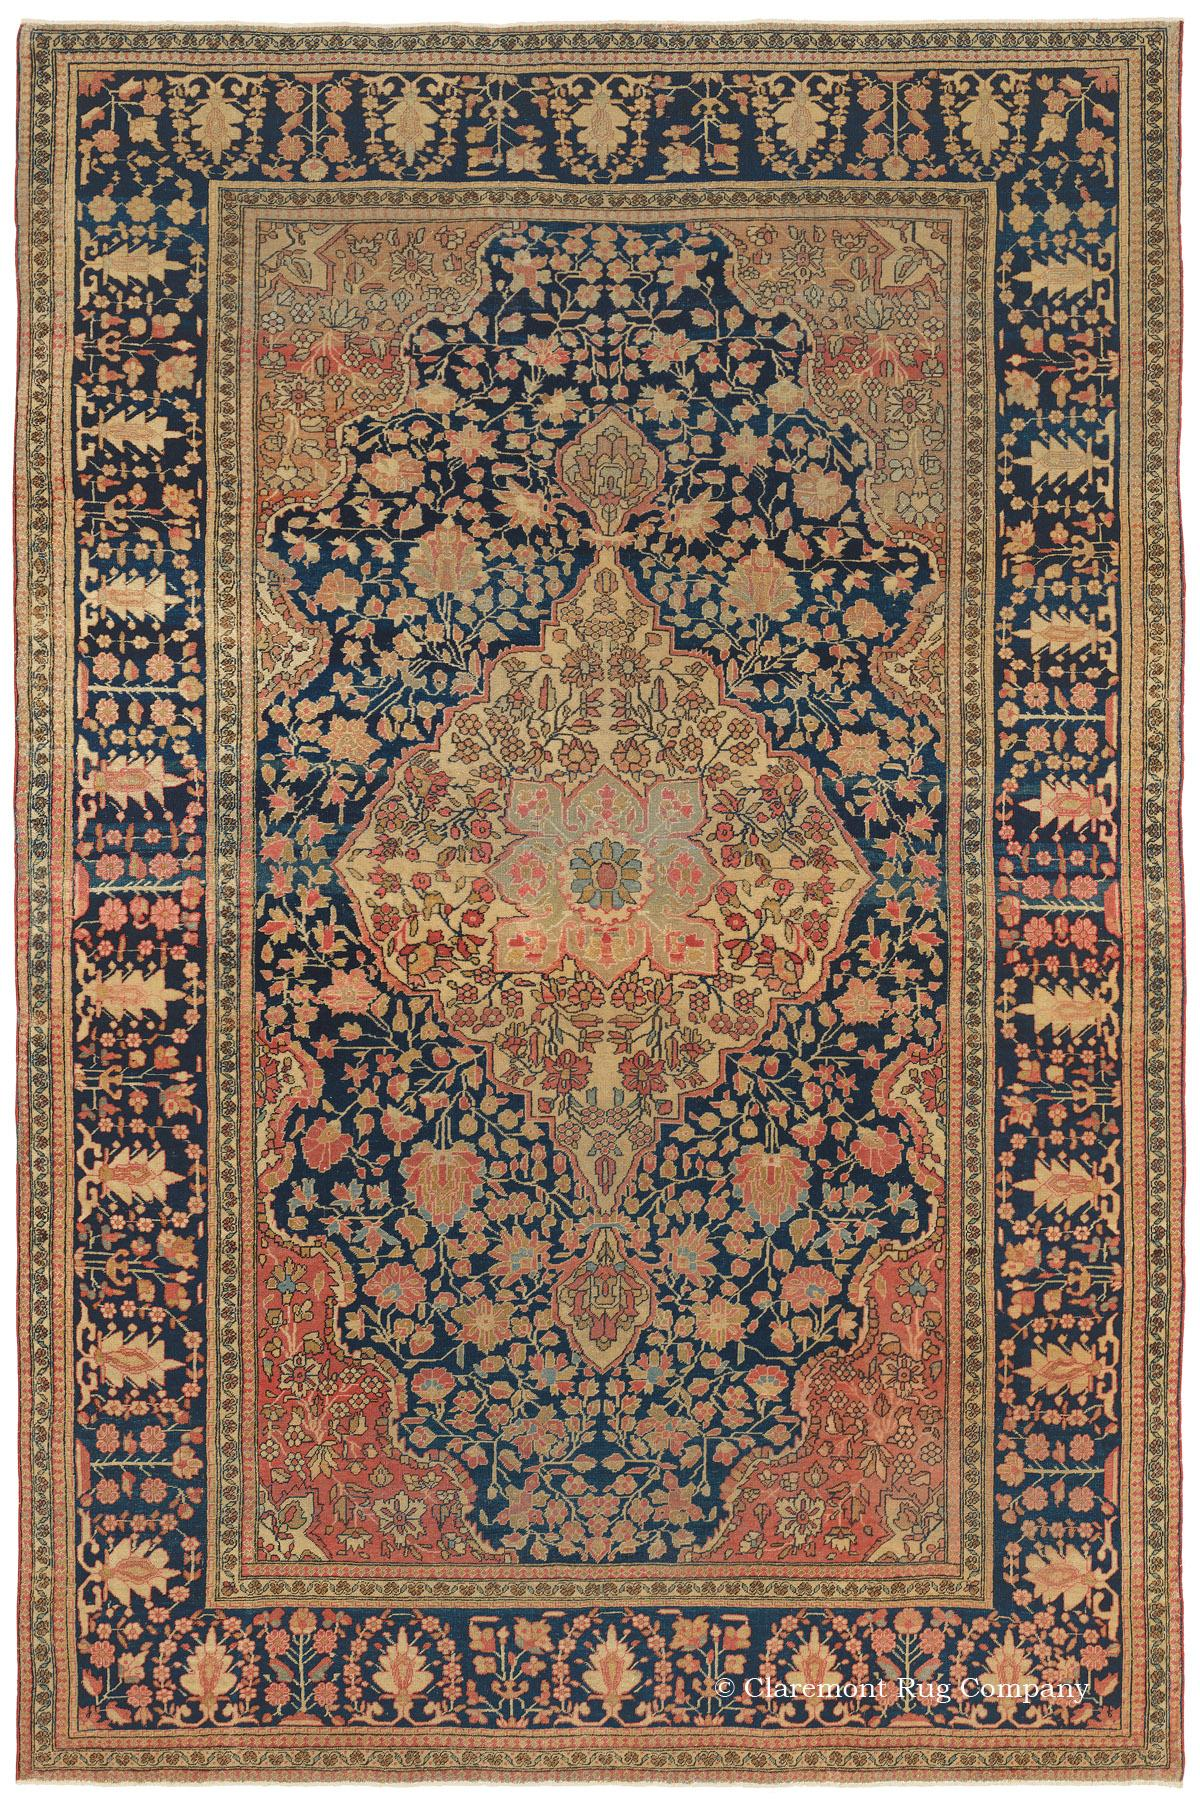 19th Century Motasham Kashan Antique Persian Rug